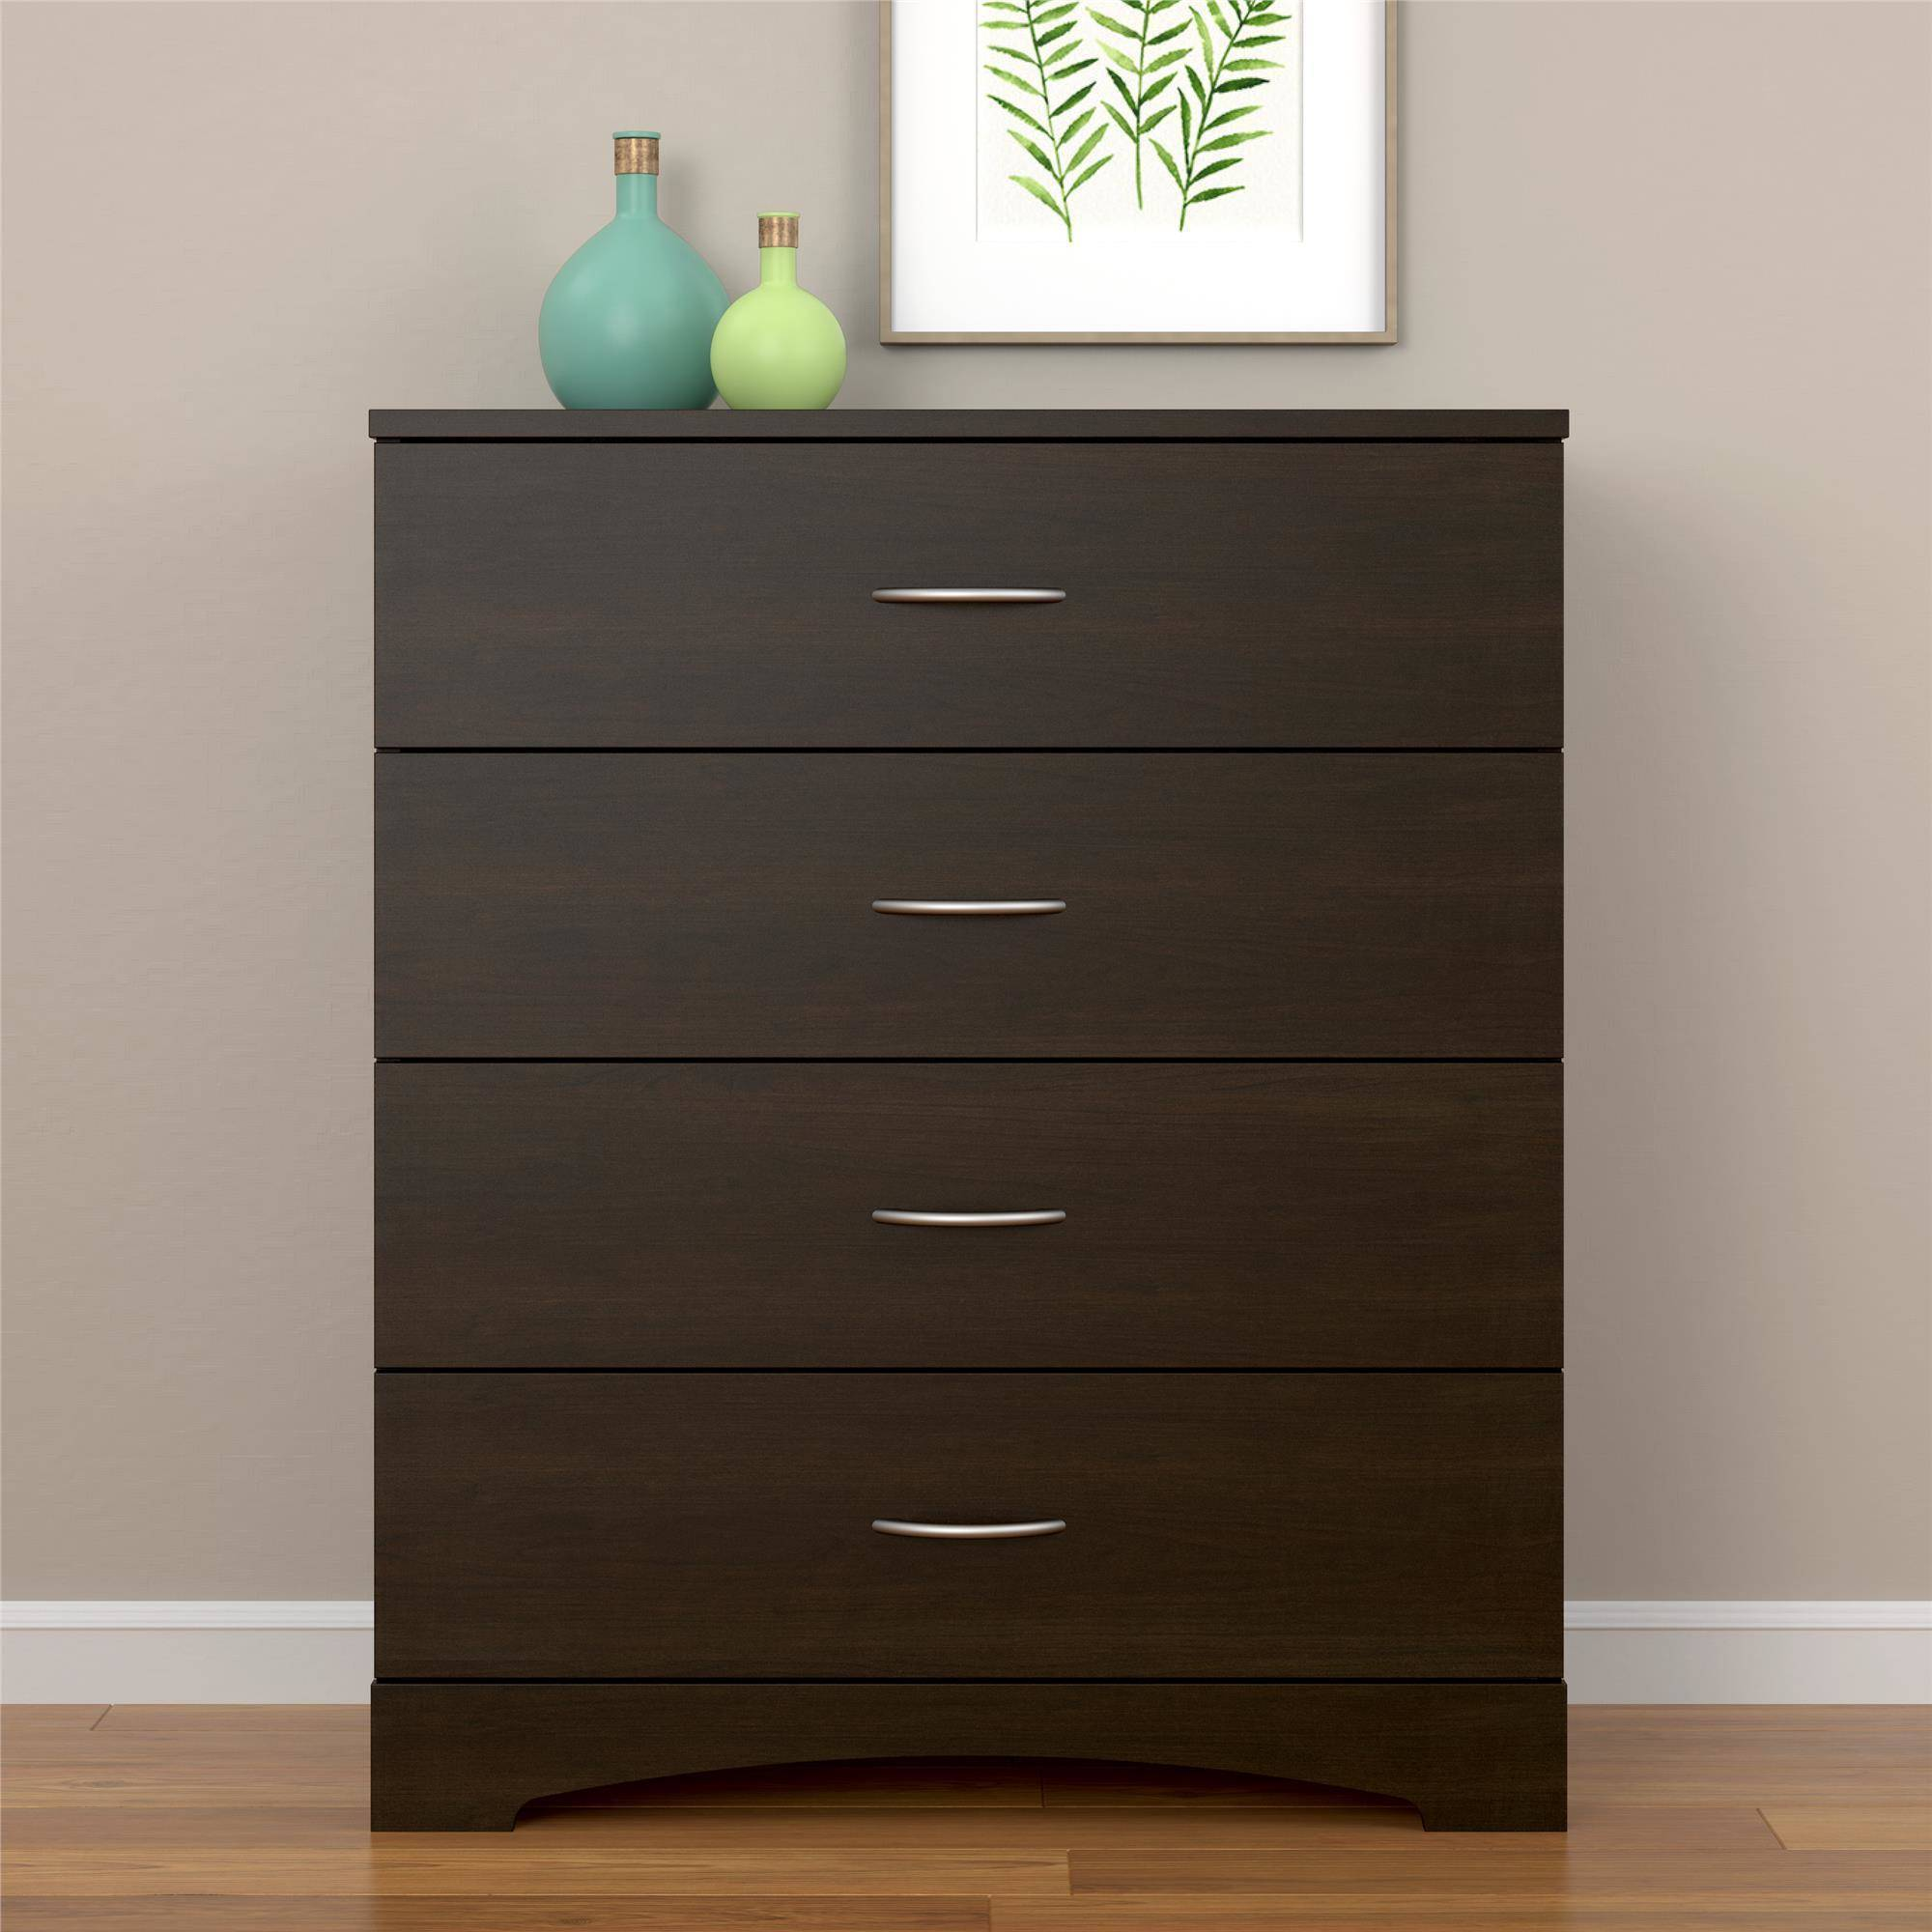 Ameriwood Home Crescent Point 4 Drawer Dresser, Multiple Colors